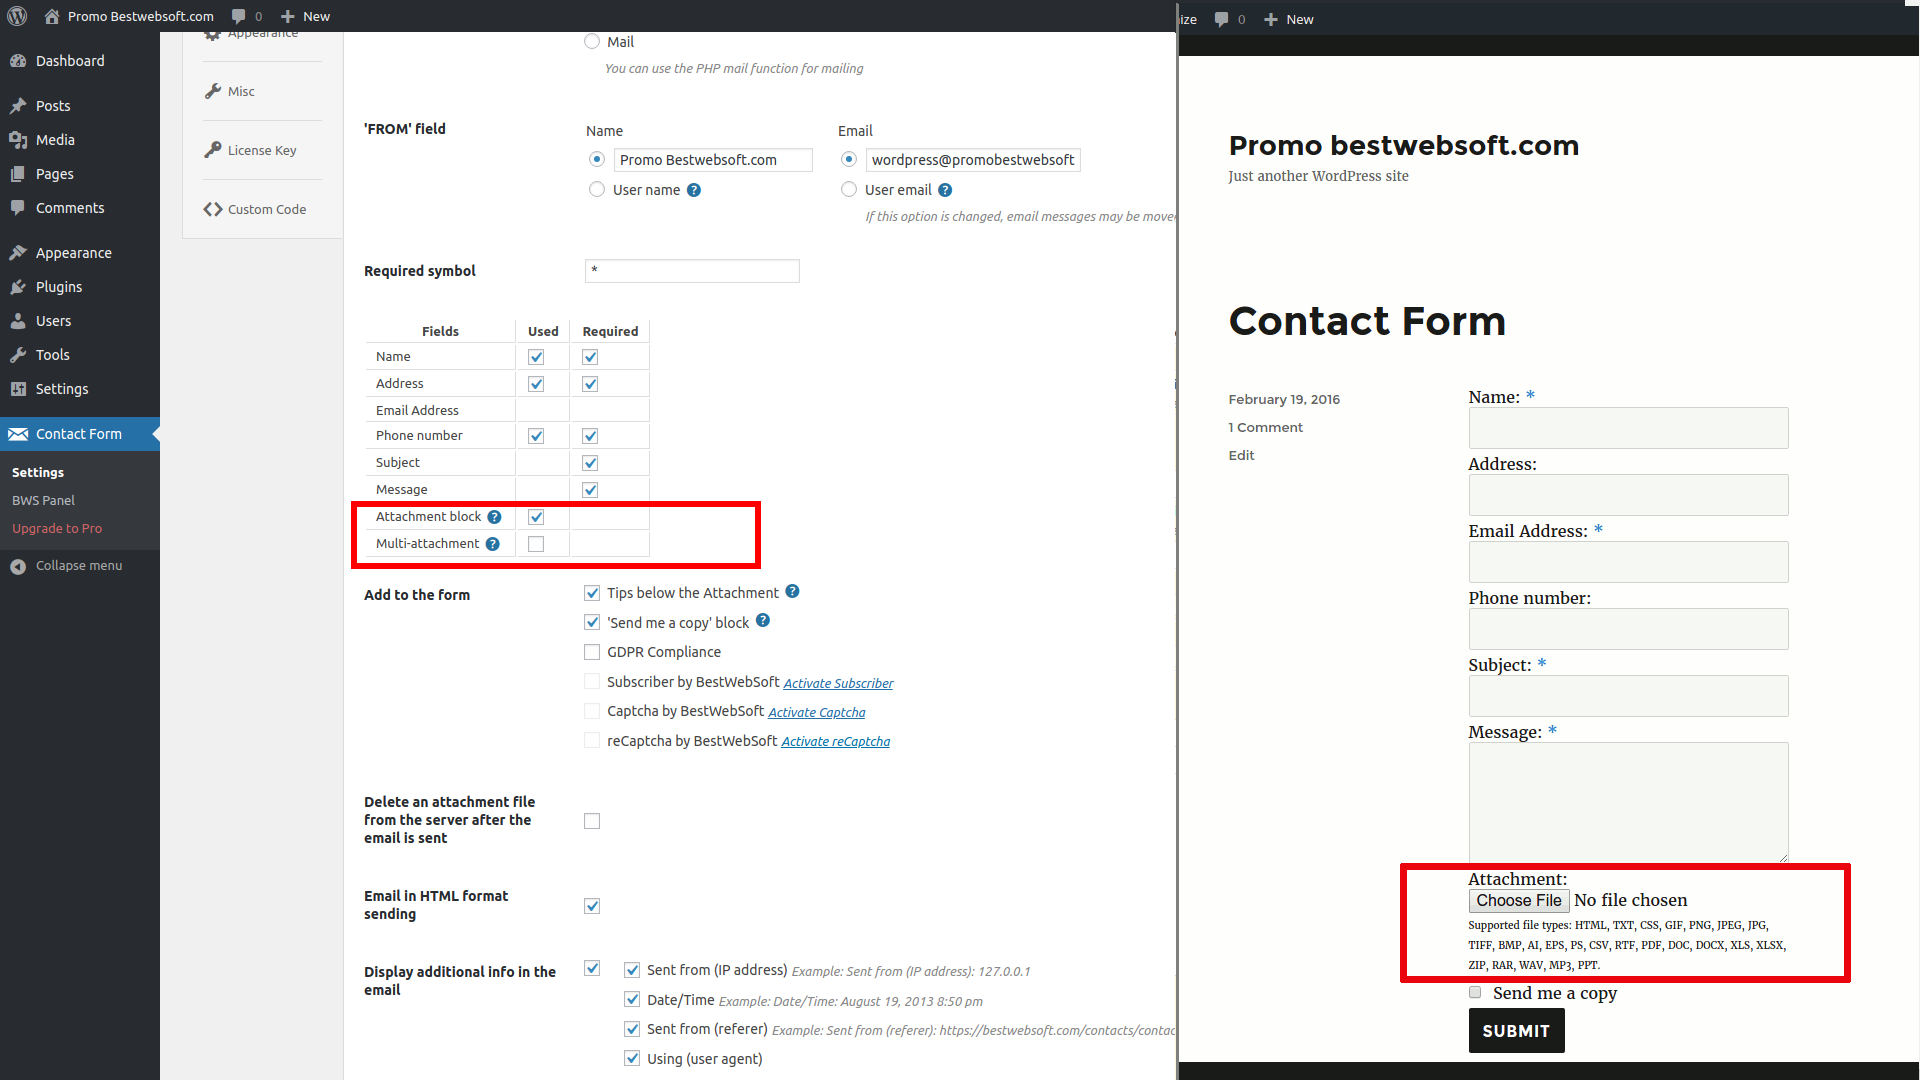 Enable the file attachement option to get important files from senders via contact form.